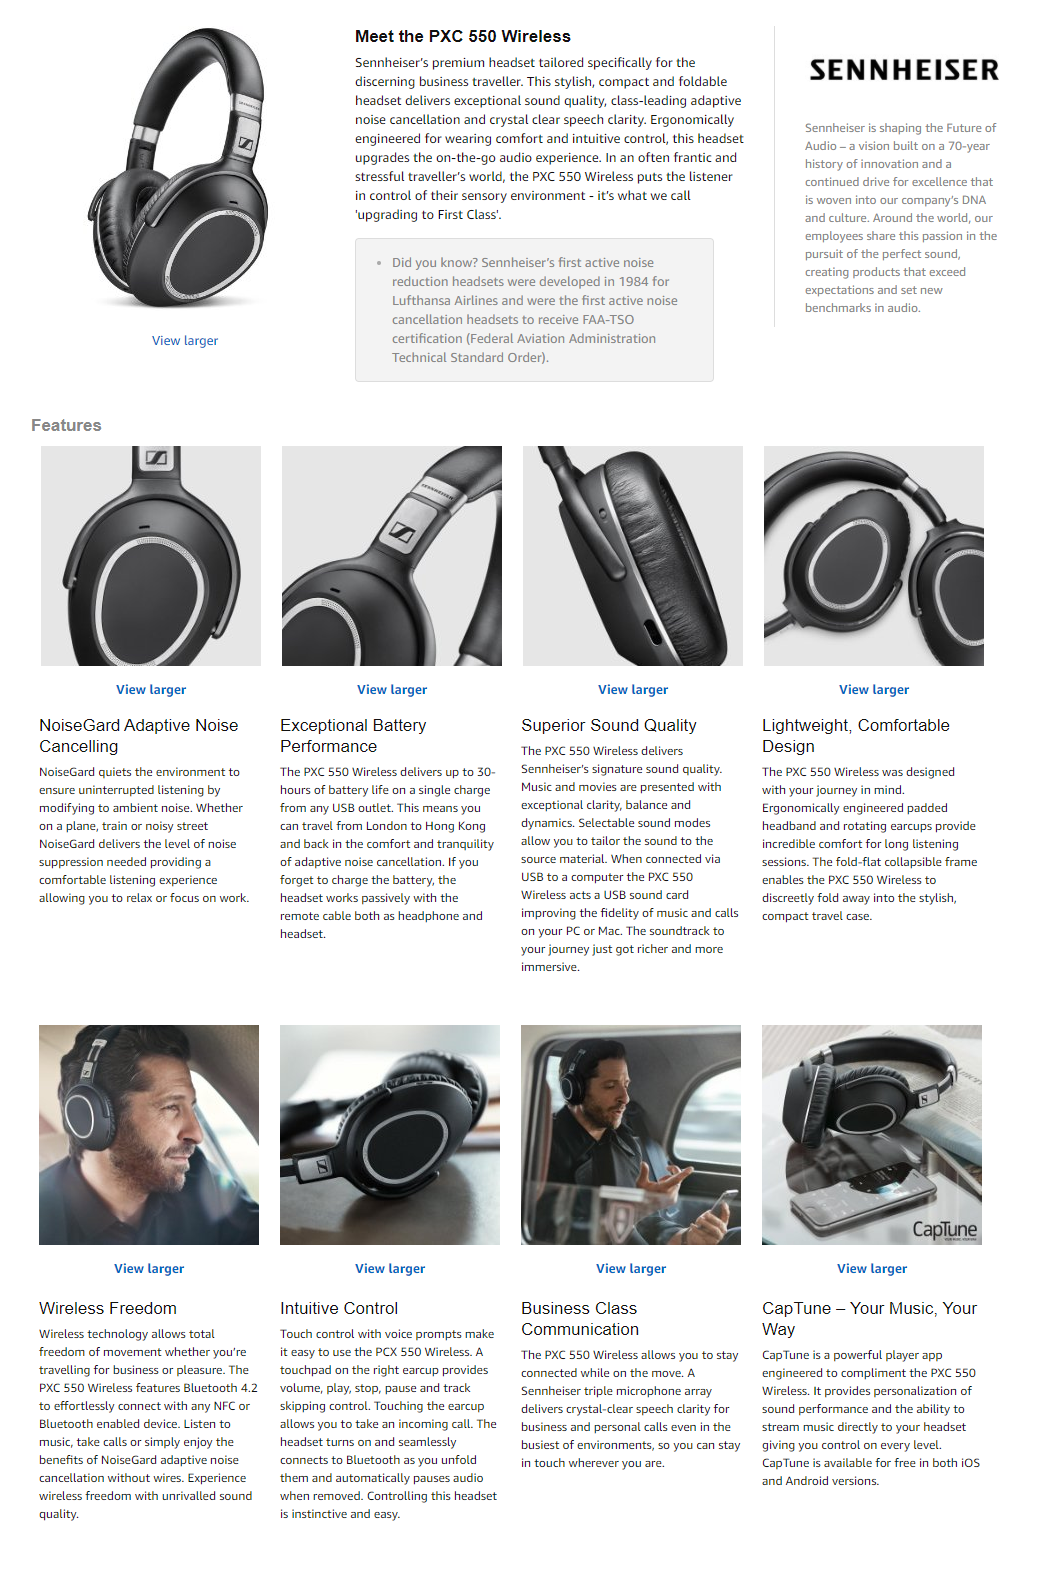 Sennheiser-product-descriptions.png